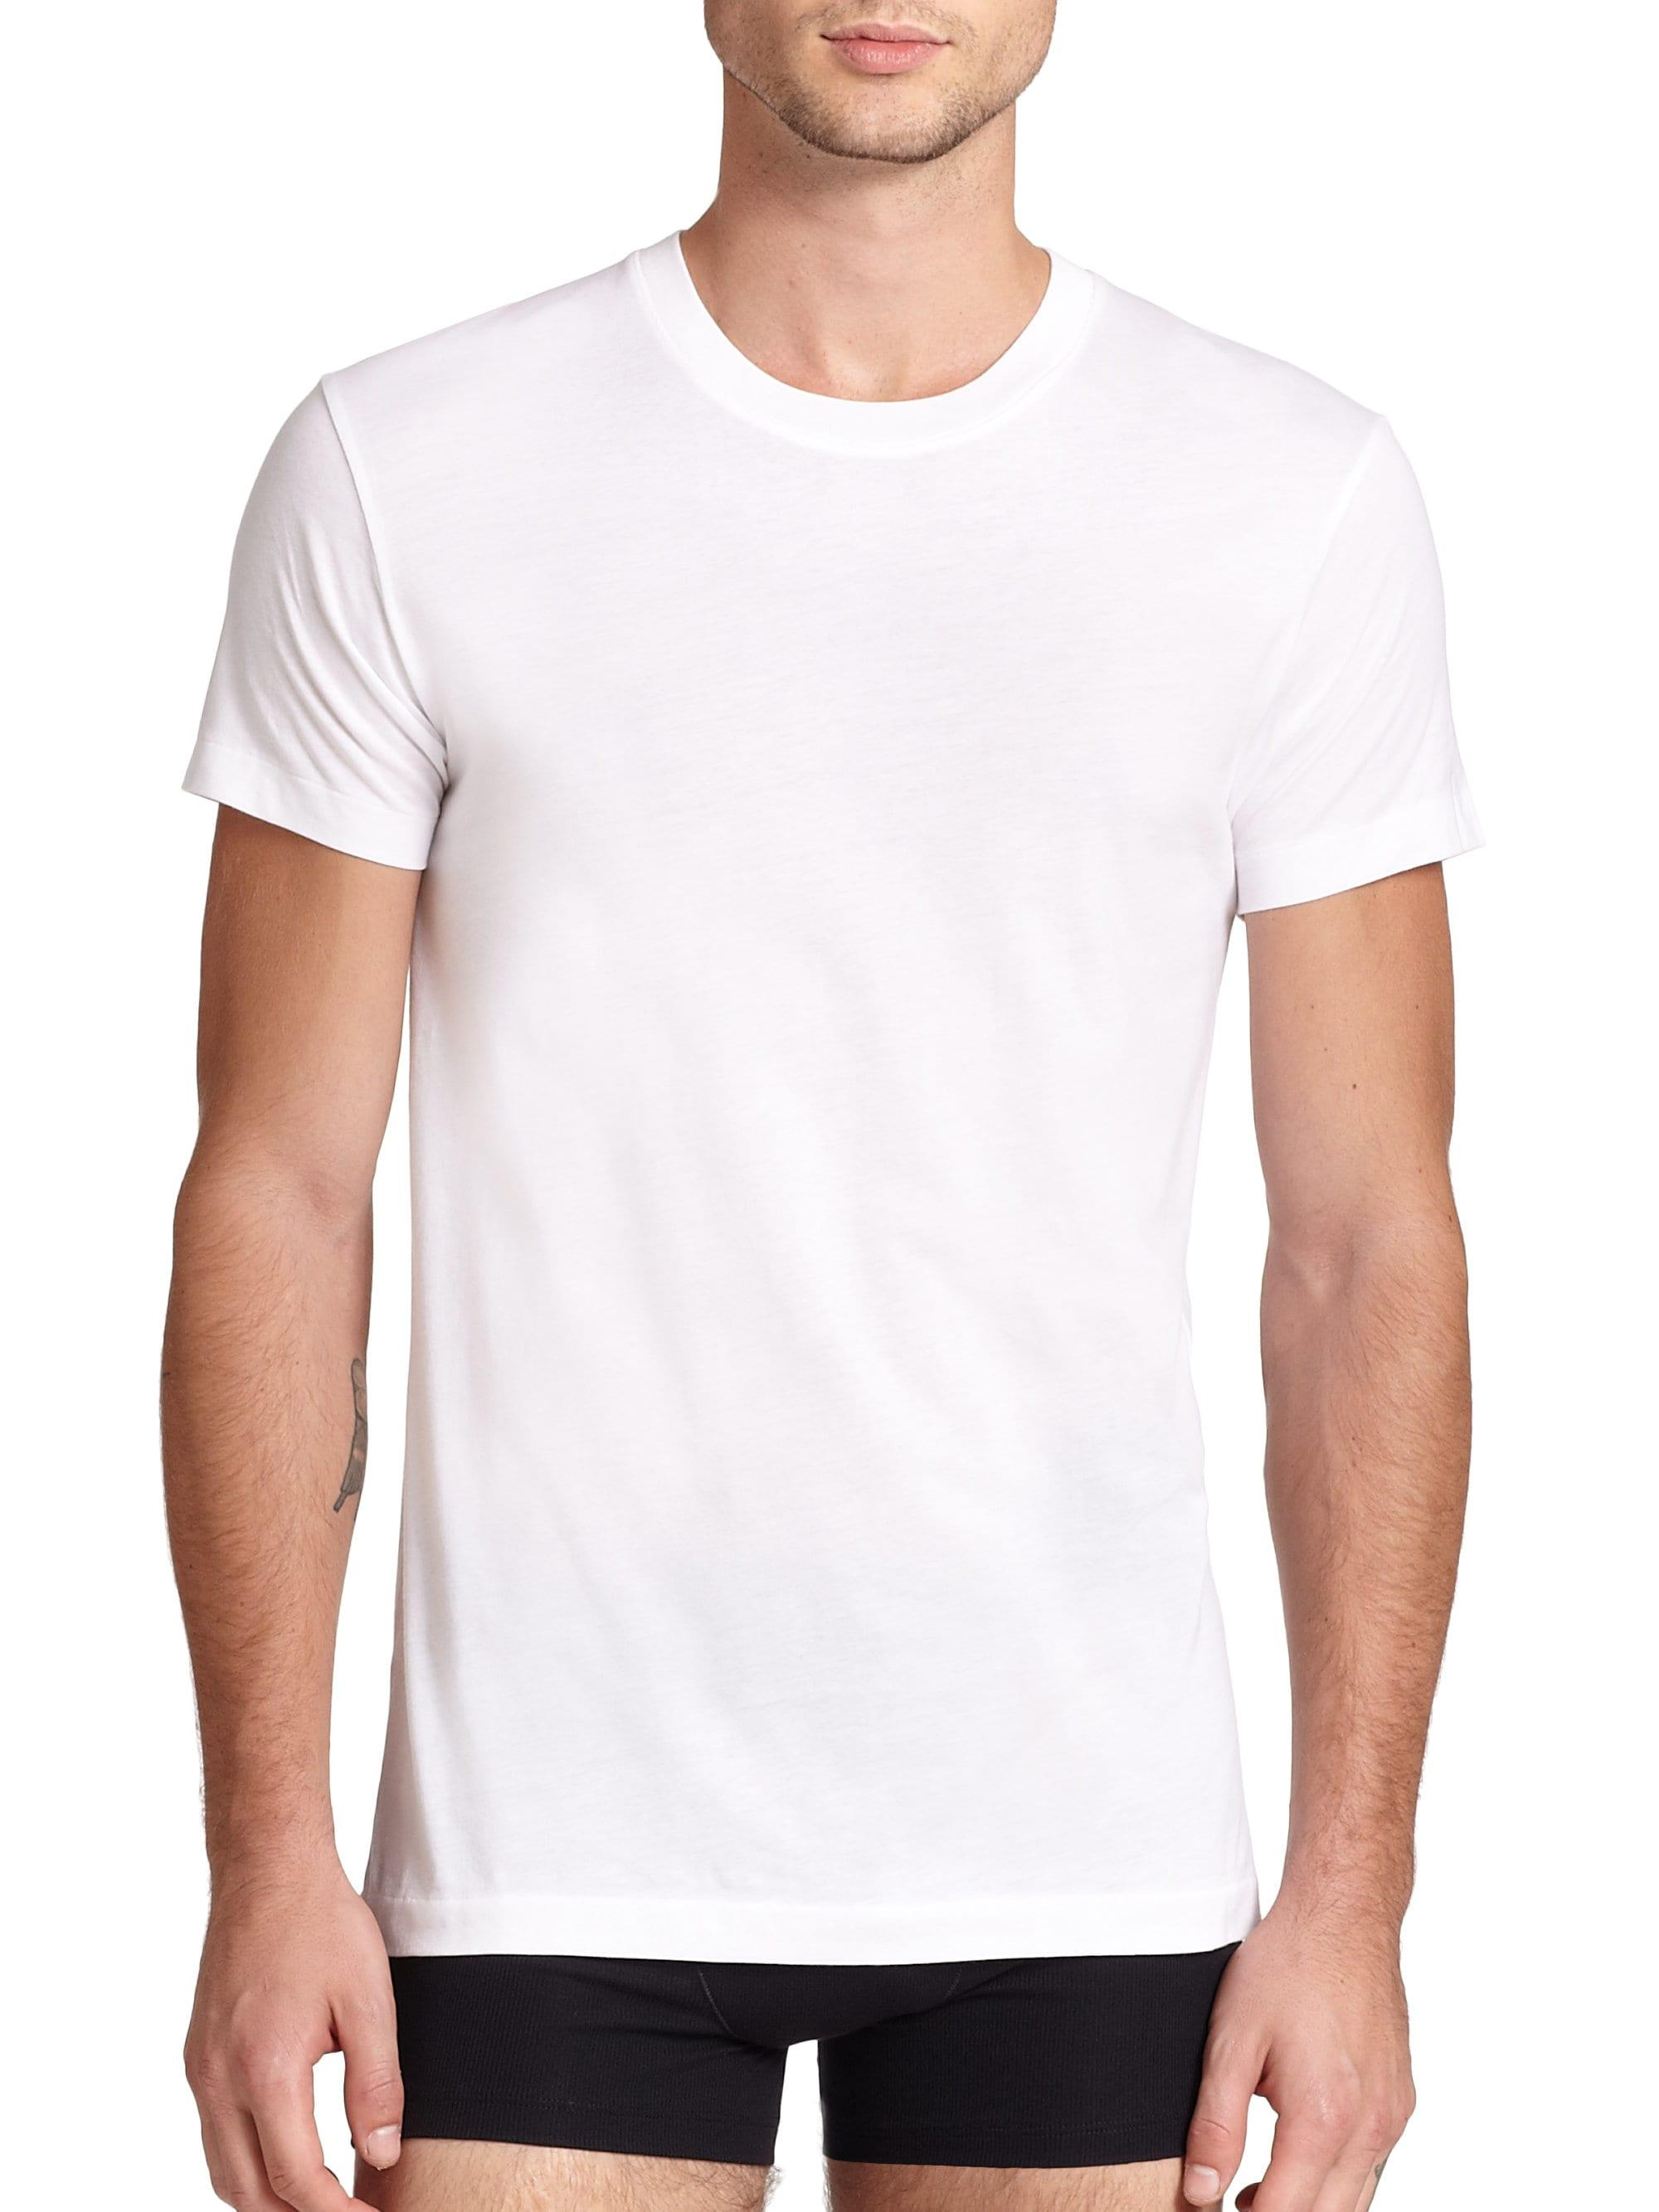 Lyst 2xist Pima Cotton Crewneck Tee In White For Men